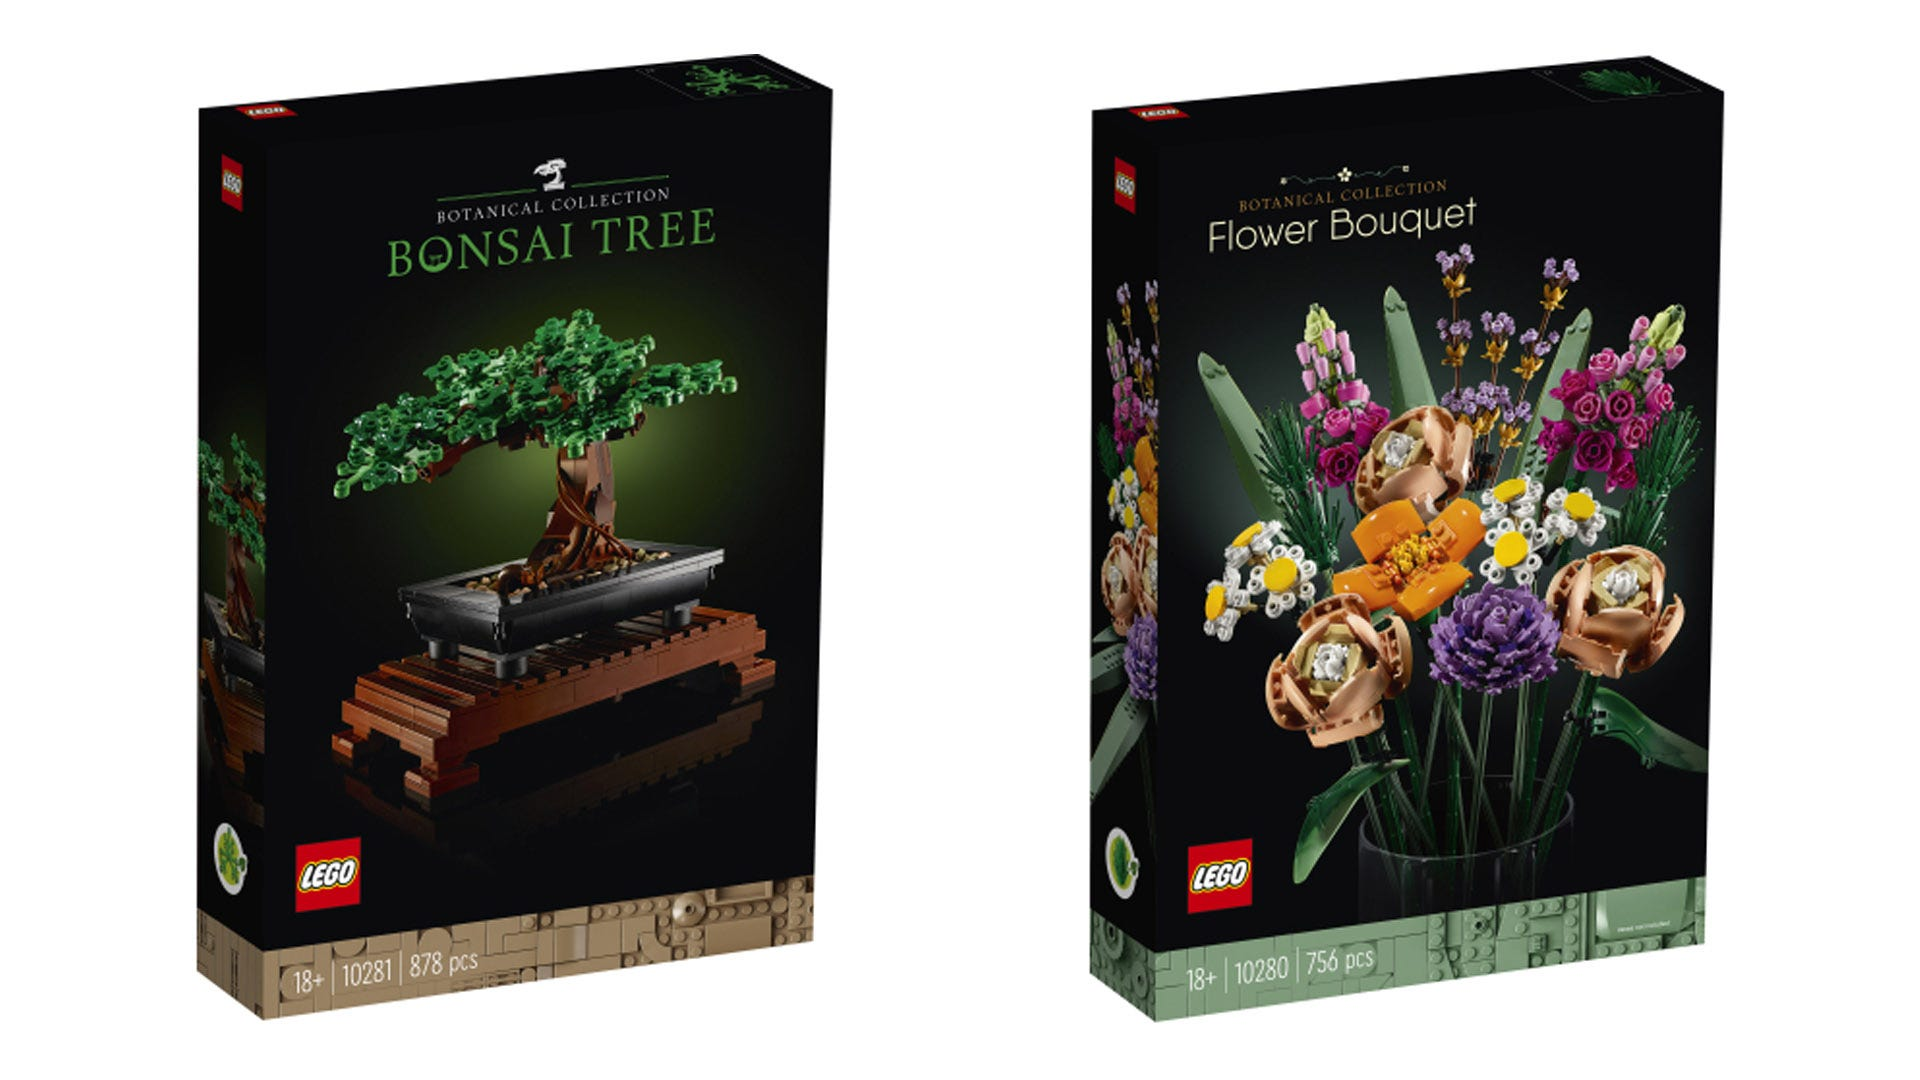 LEGO bonsai tree and flower bouqet